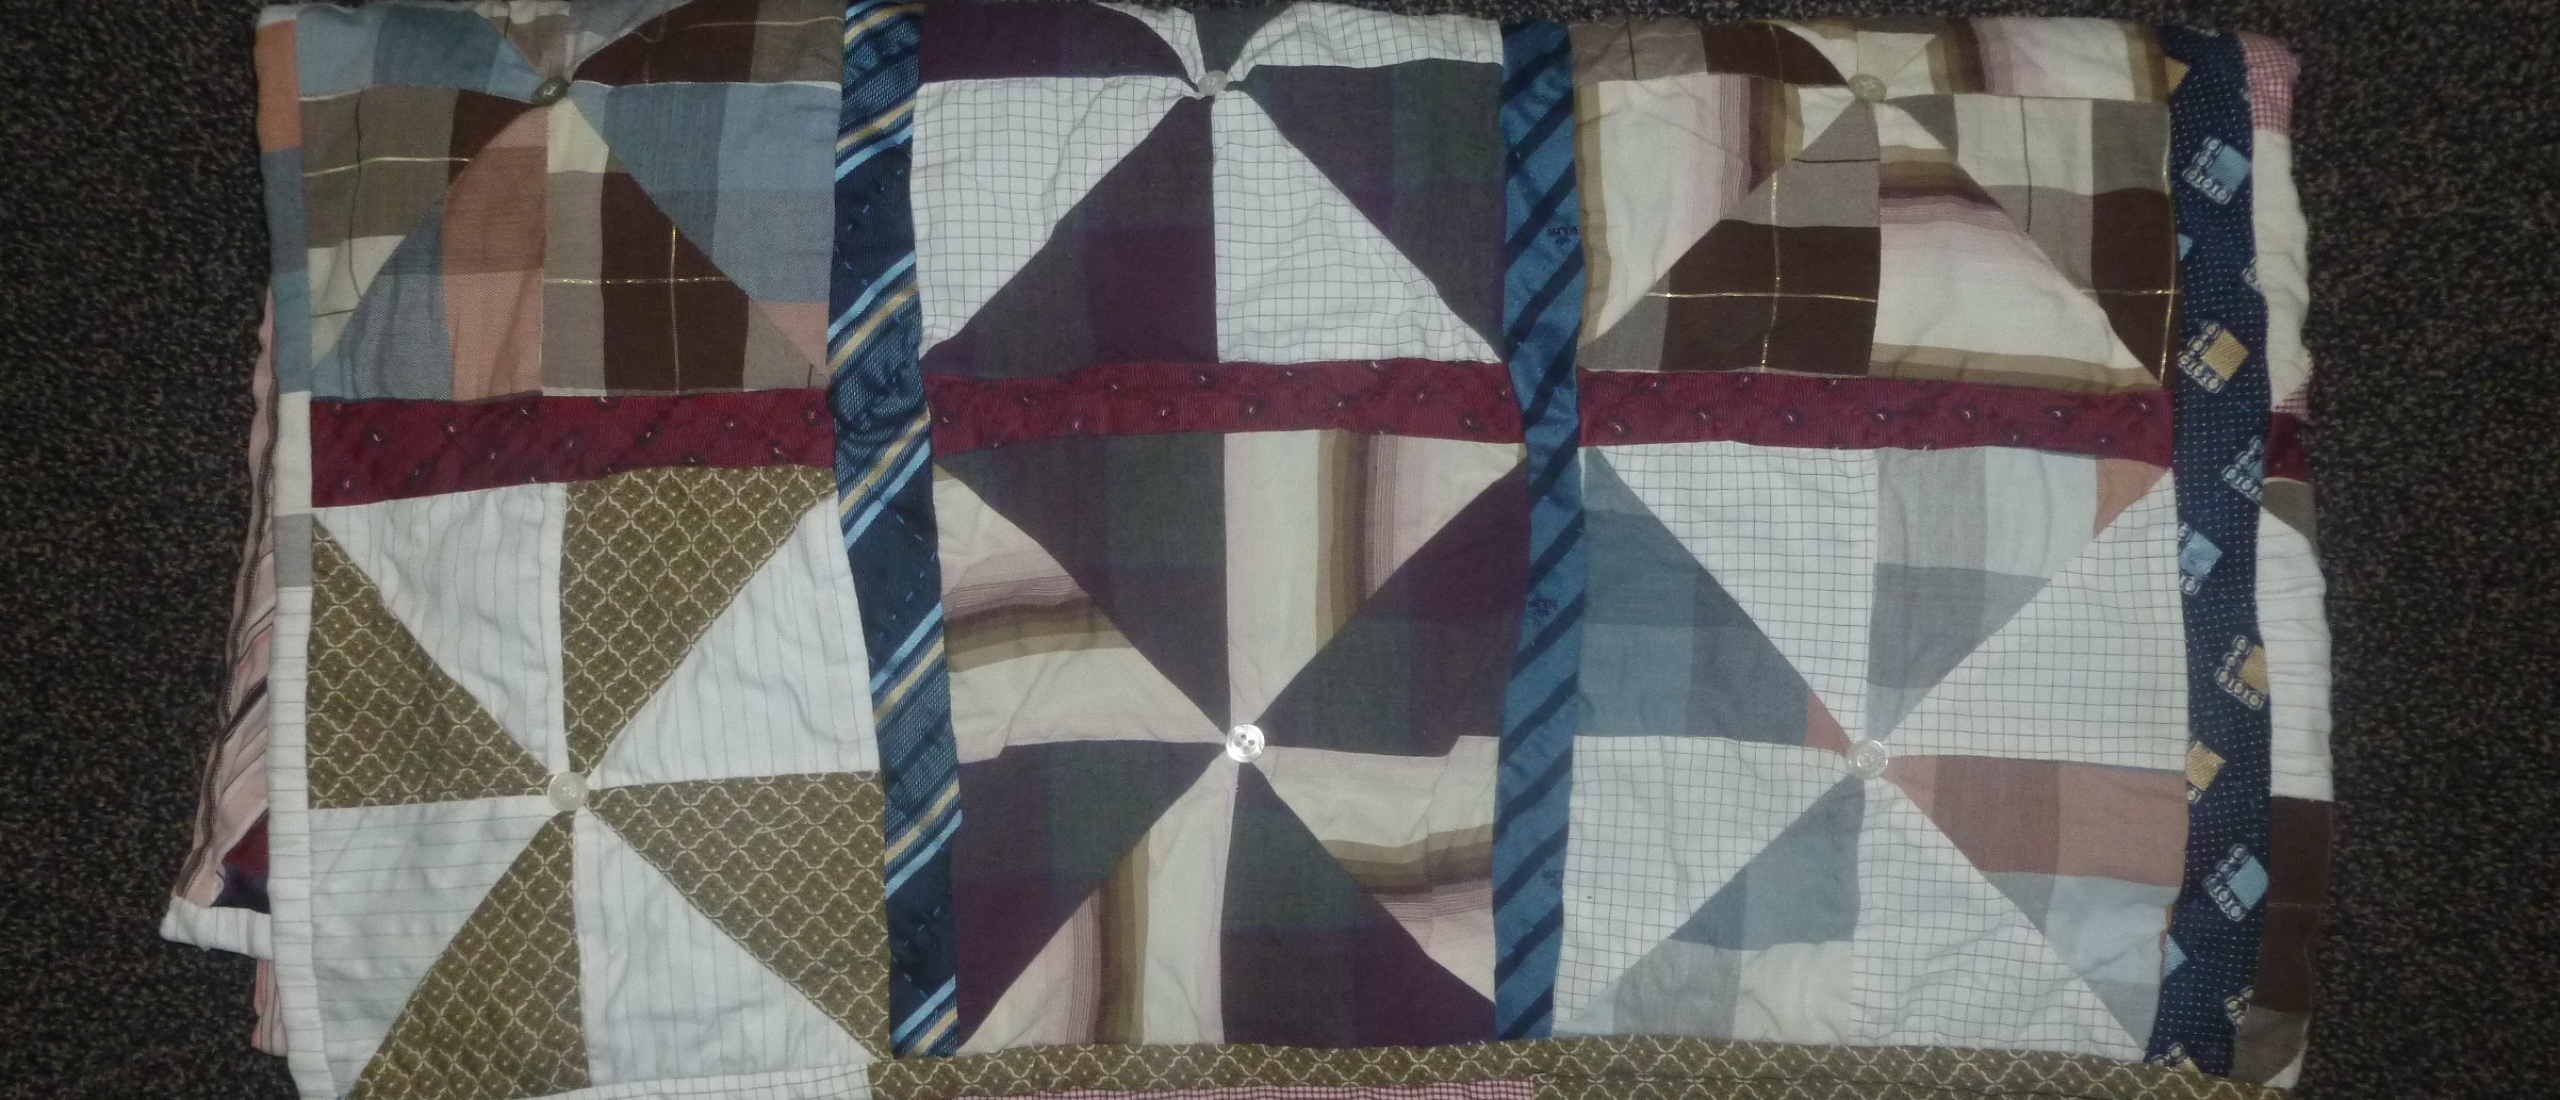 Shirt and tie quilt Rianne